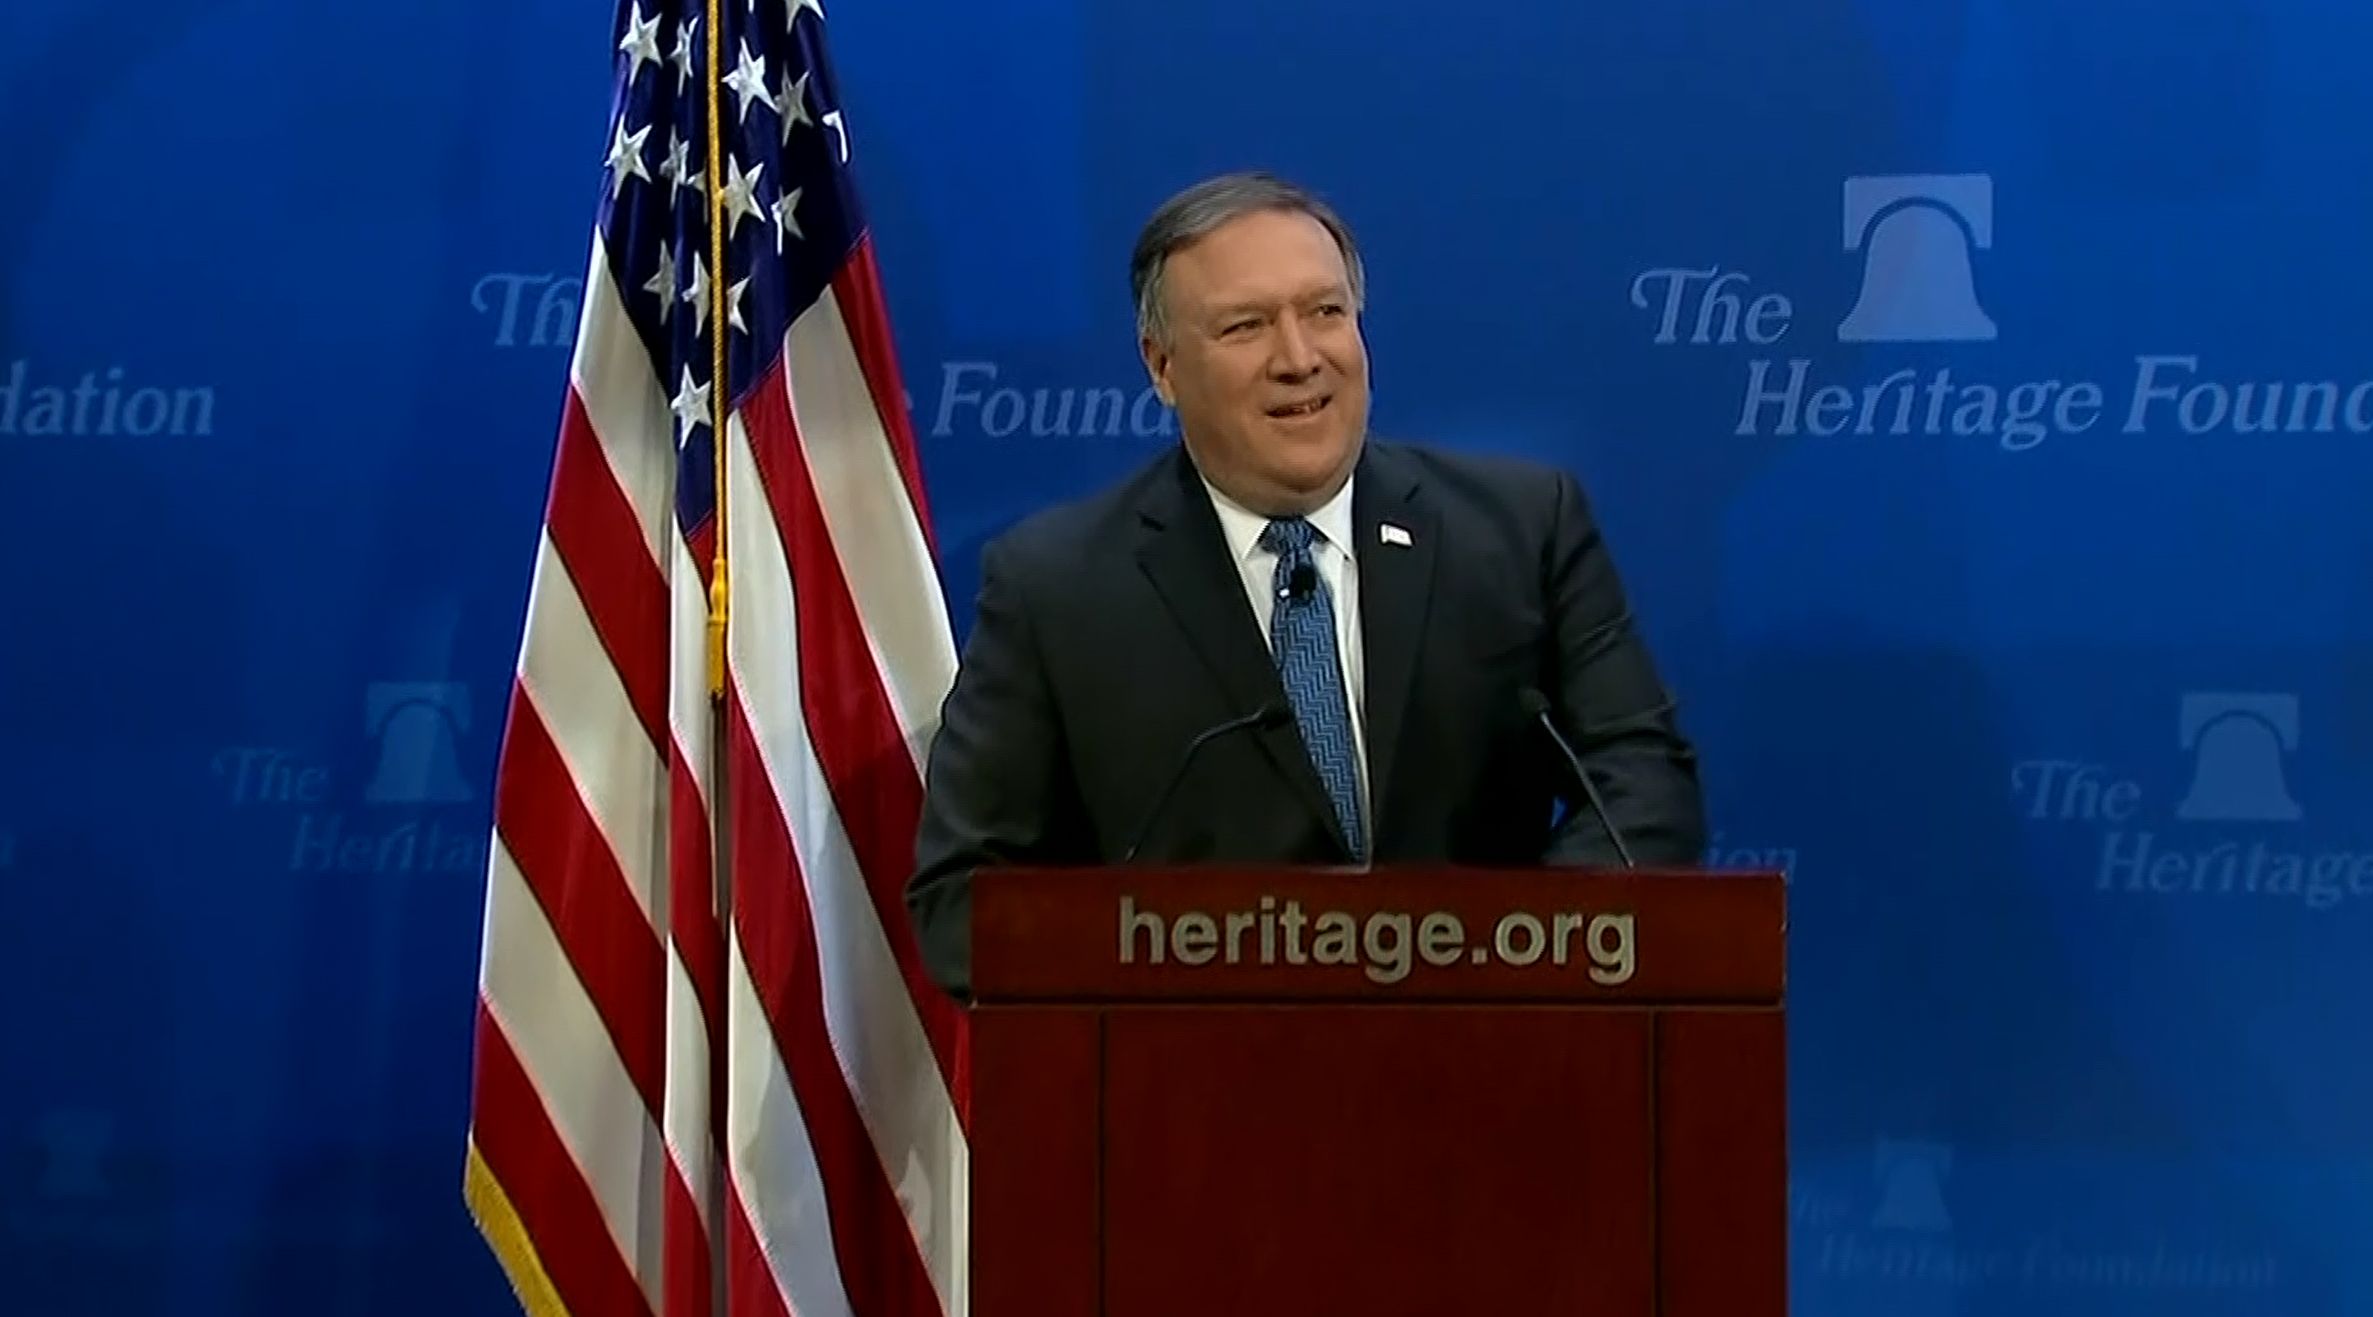 Secretary of State Mike Pompeo delivers a speech on Iran at the Heritage Foundation on May 21, 2018. (CNN Newsource)